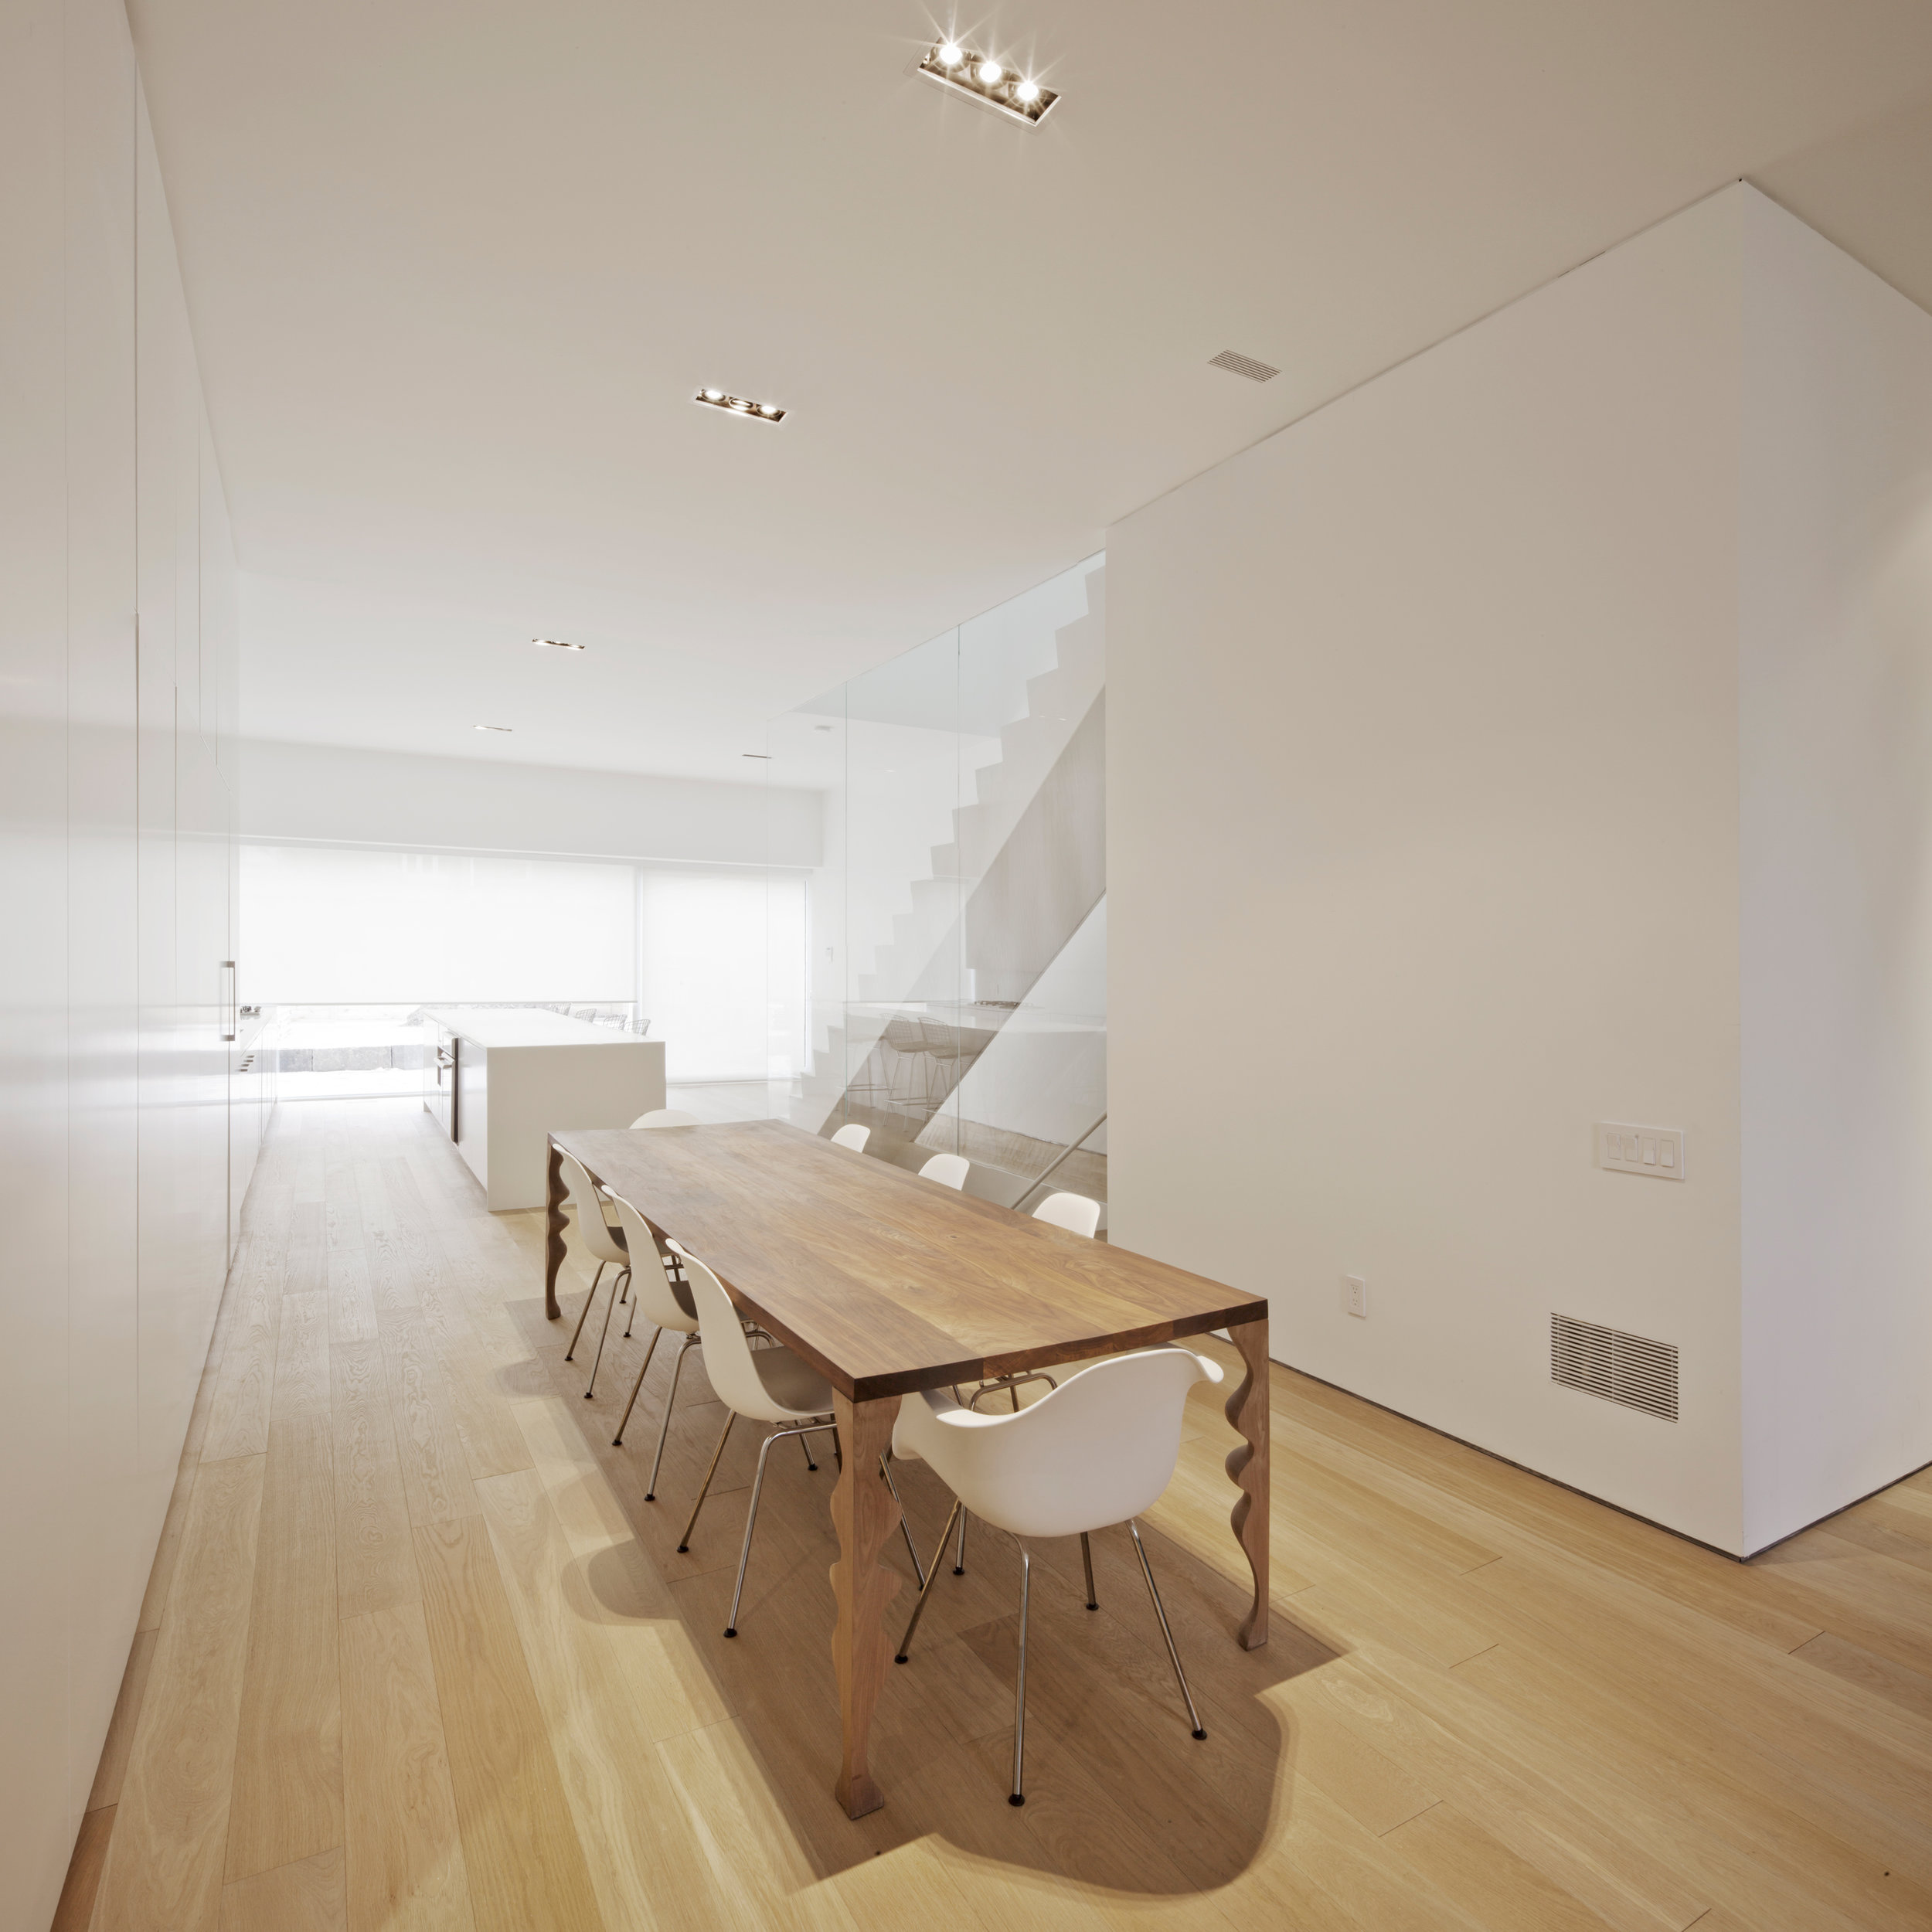 Robert House - dining room stair interior glass